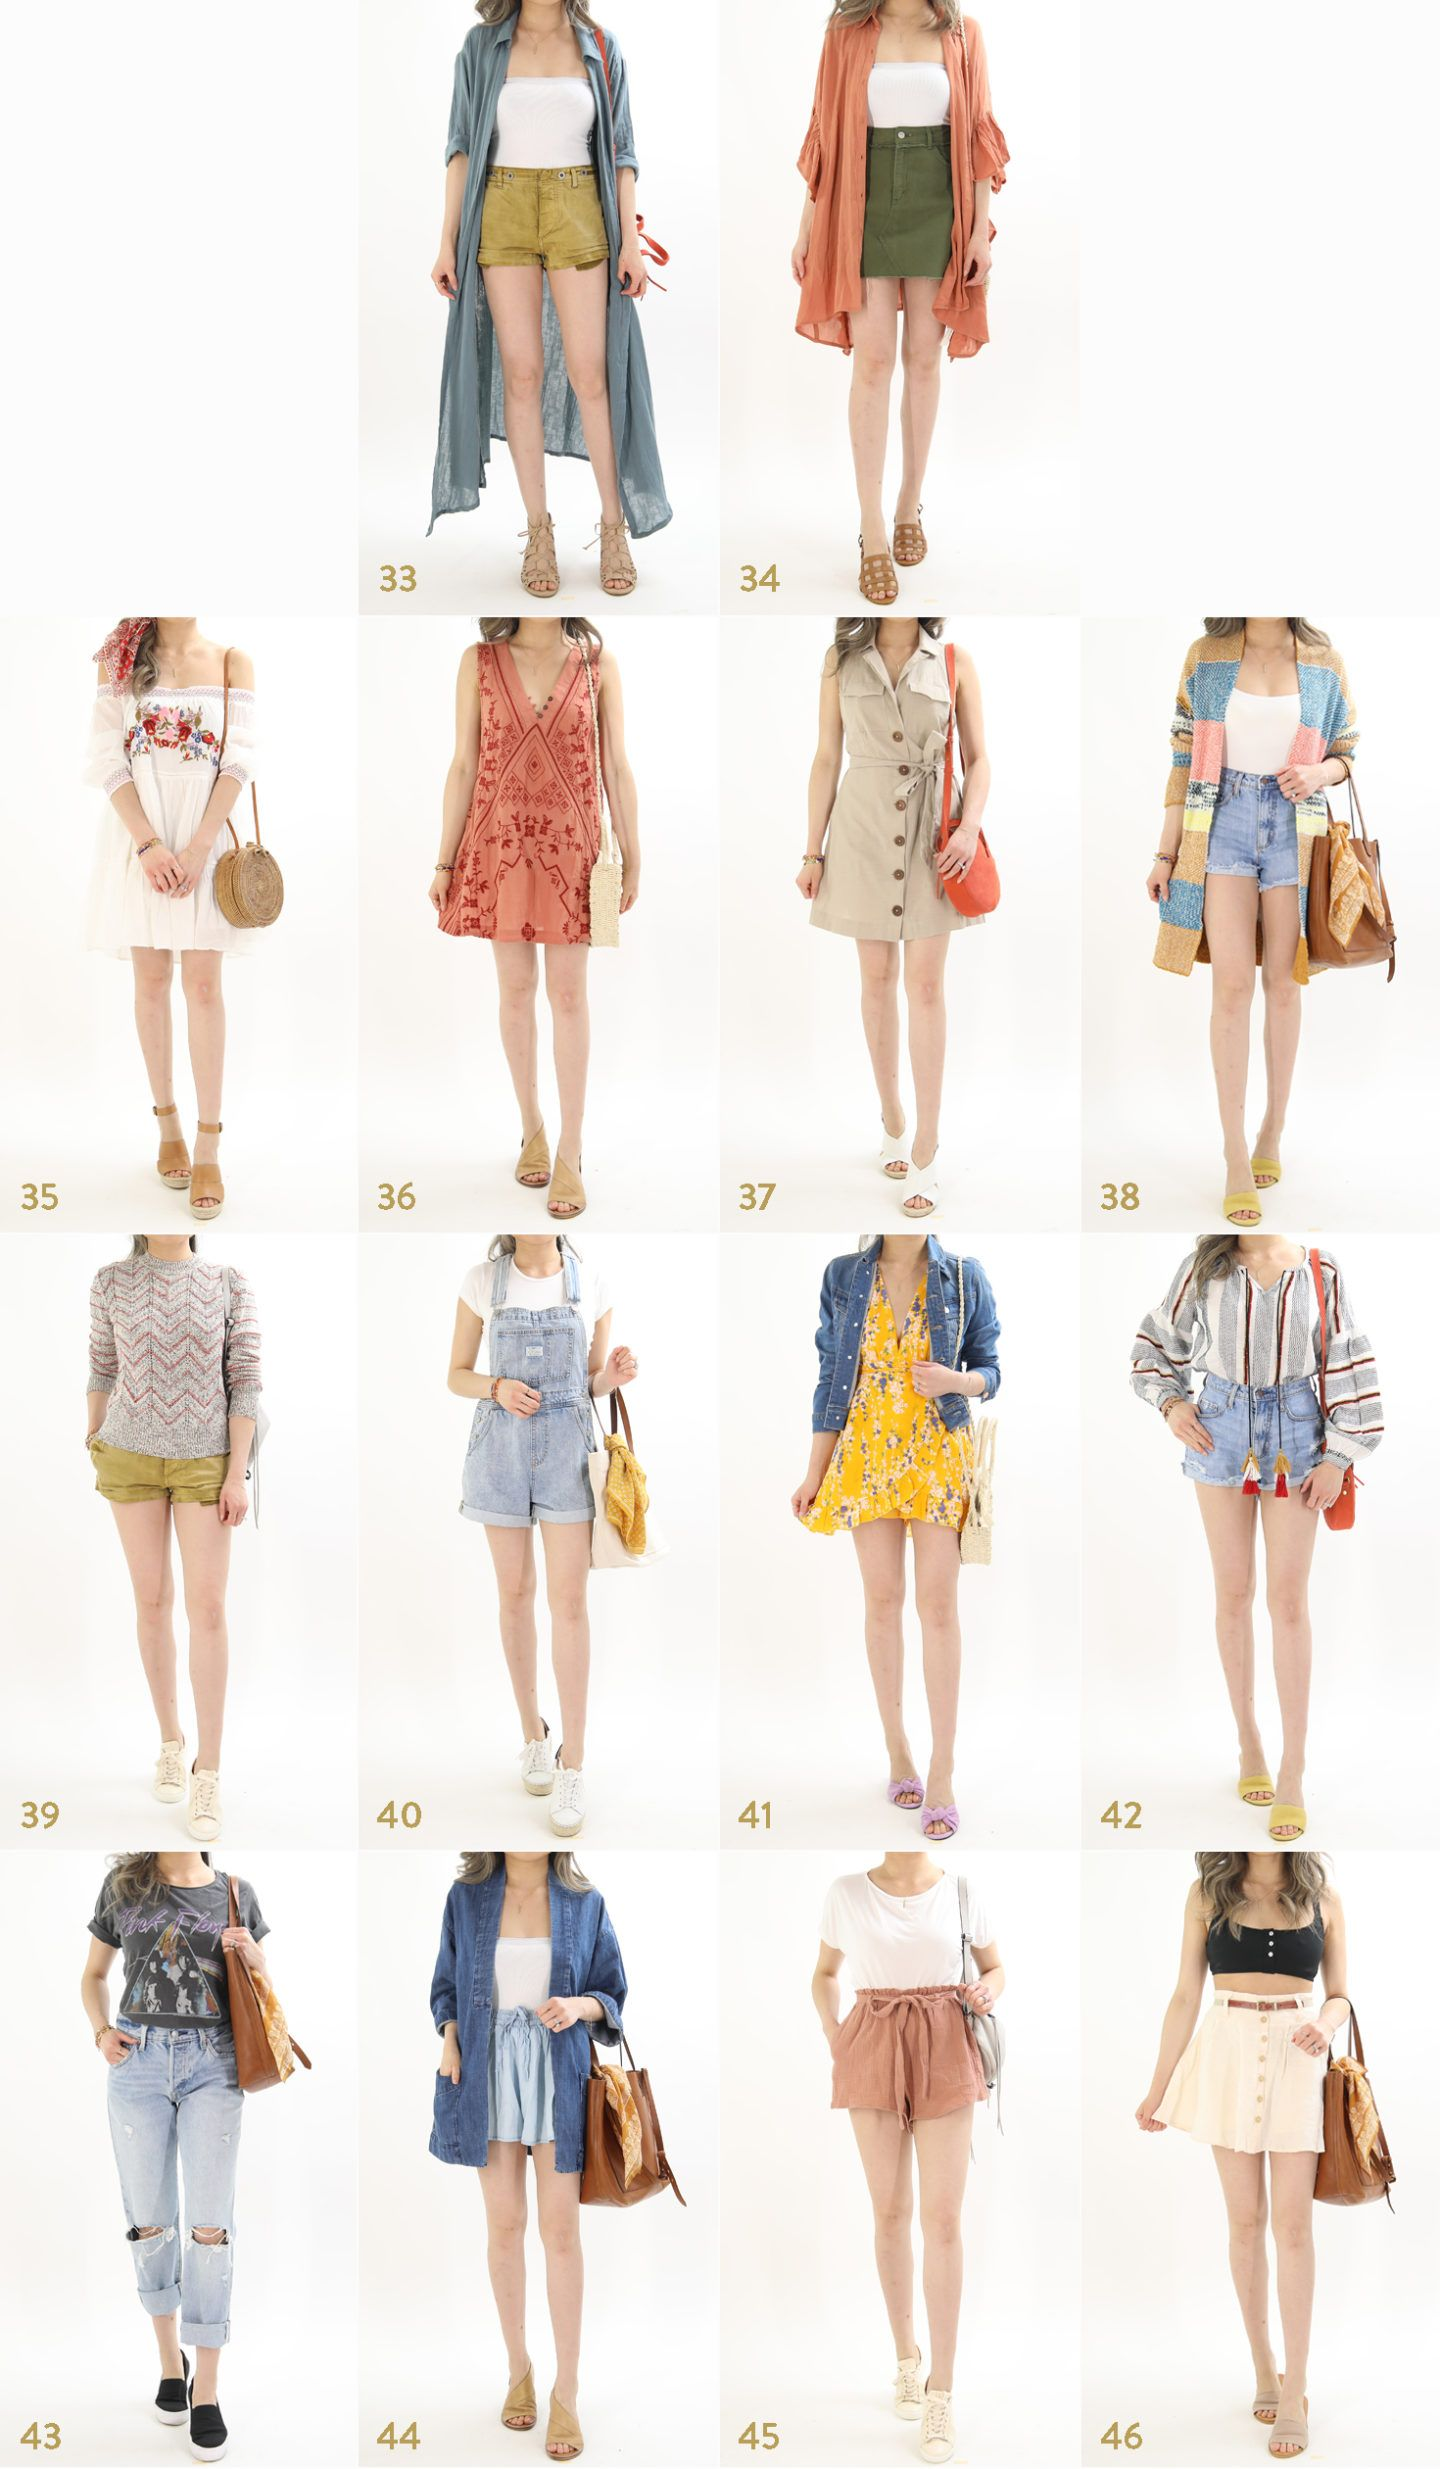 4250f2962230 The ULTIMATE Summer Vacation Outfit Ideas Guide by Miss Louie